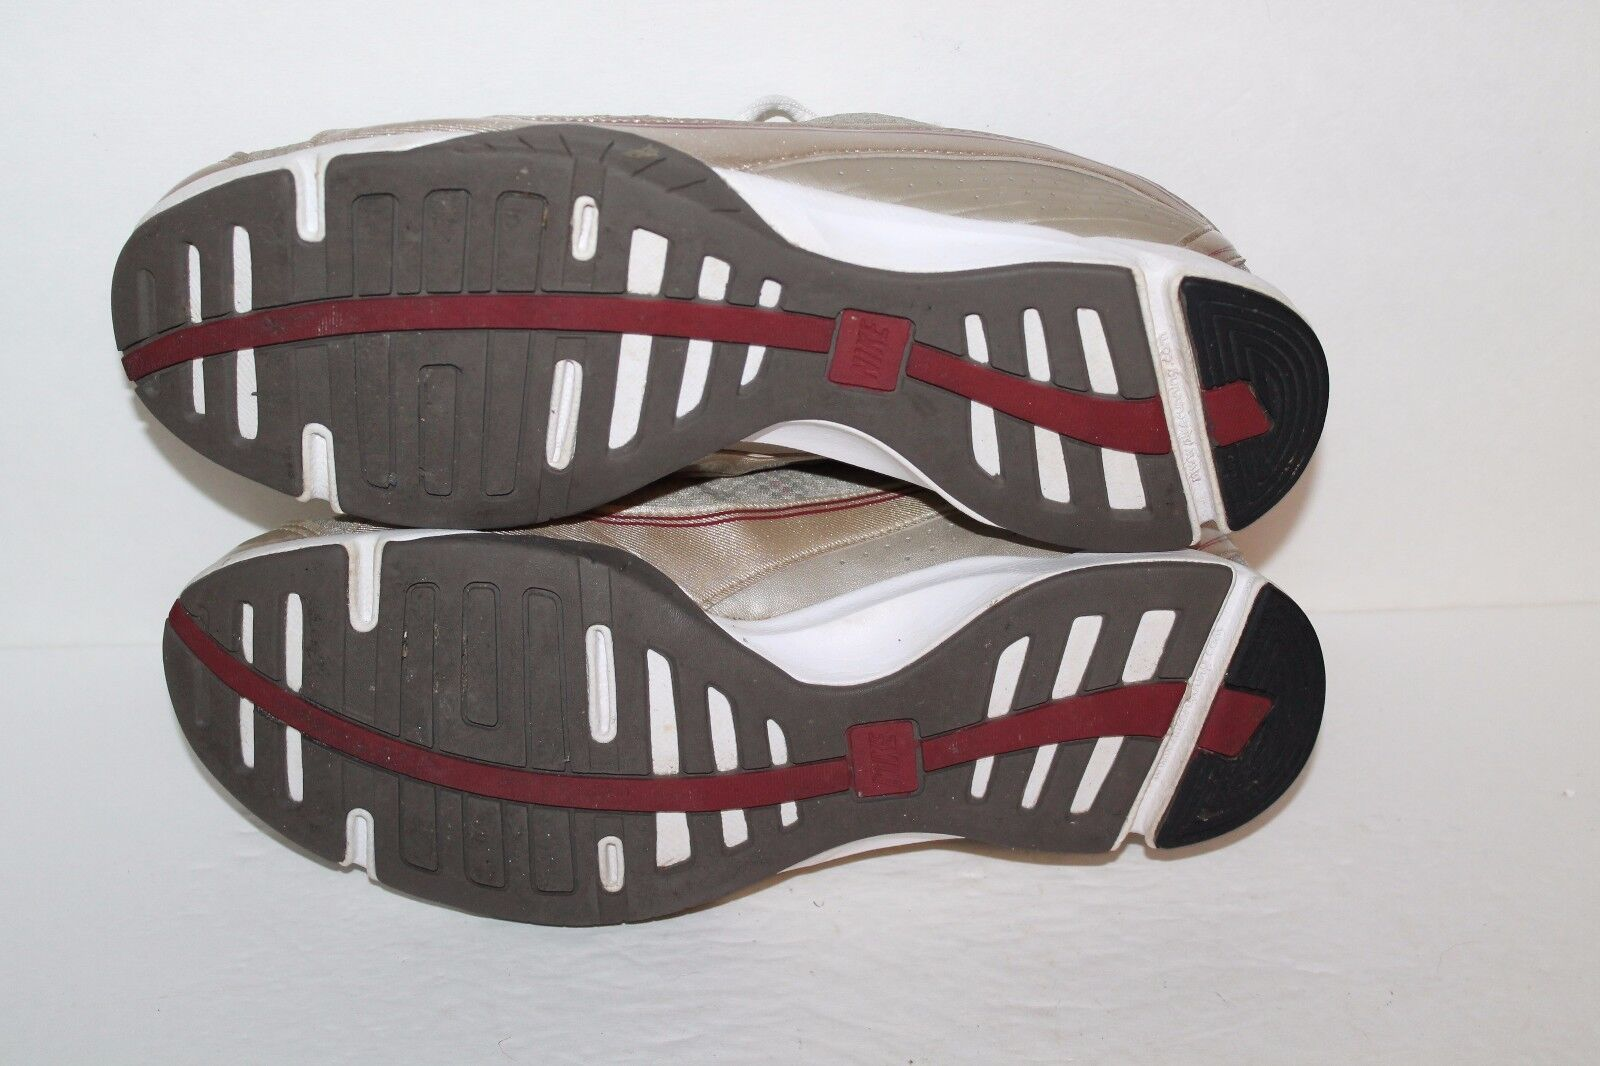 reputable site 1d75a 948cf ... Nike Running Shoes Trainers, Taupe Pewter Pink, Womens US Size Size